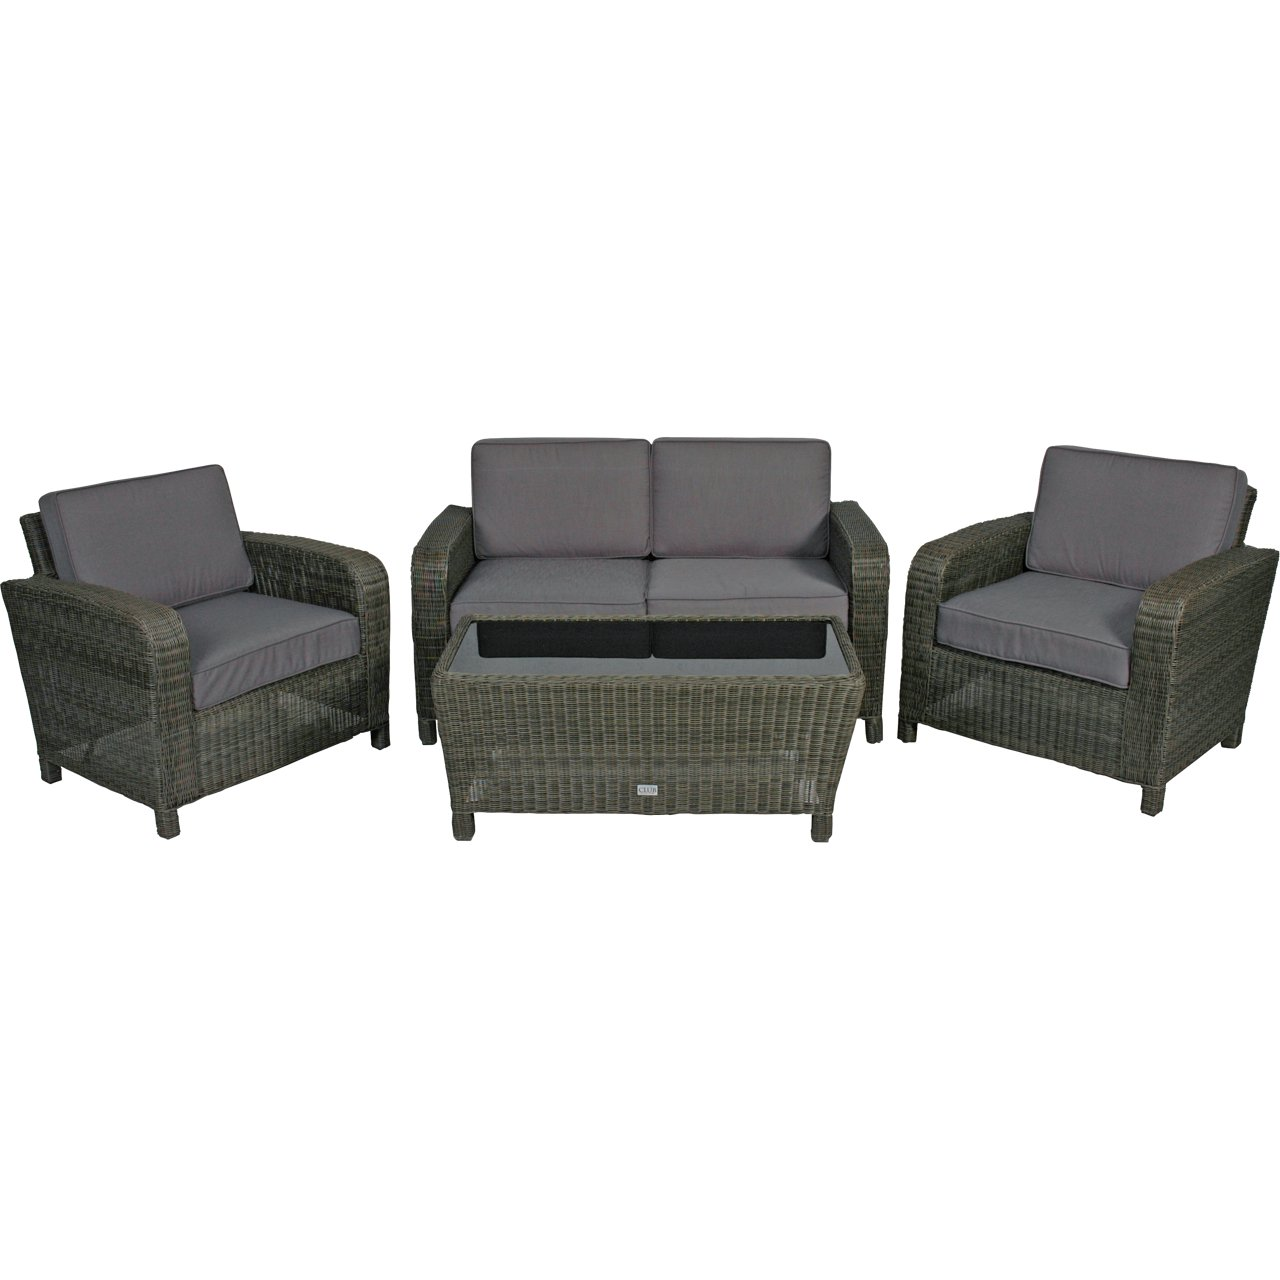 poly rattan lounge set 4tlg taupe gartenm bel tisch. Black Bedroom Furniture Sets. Home Design Ideas